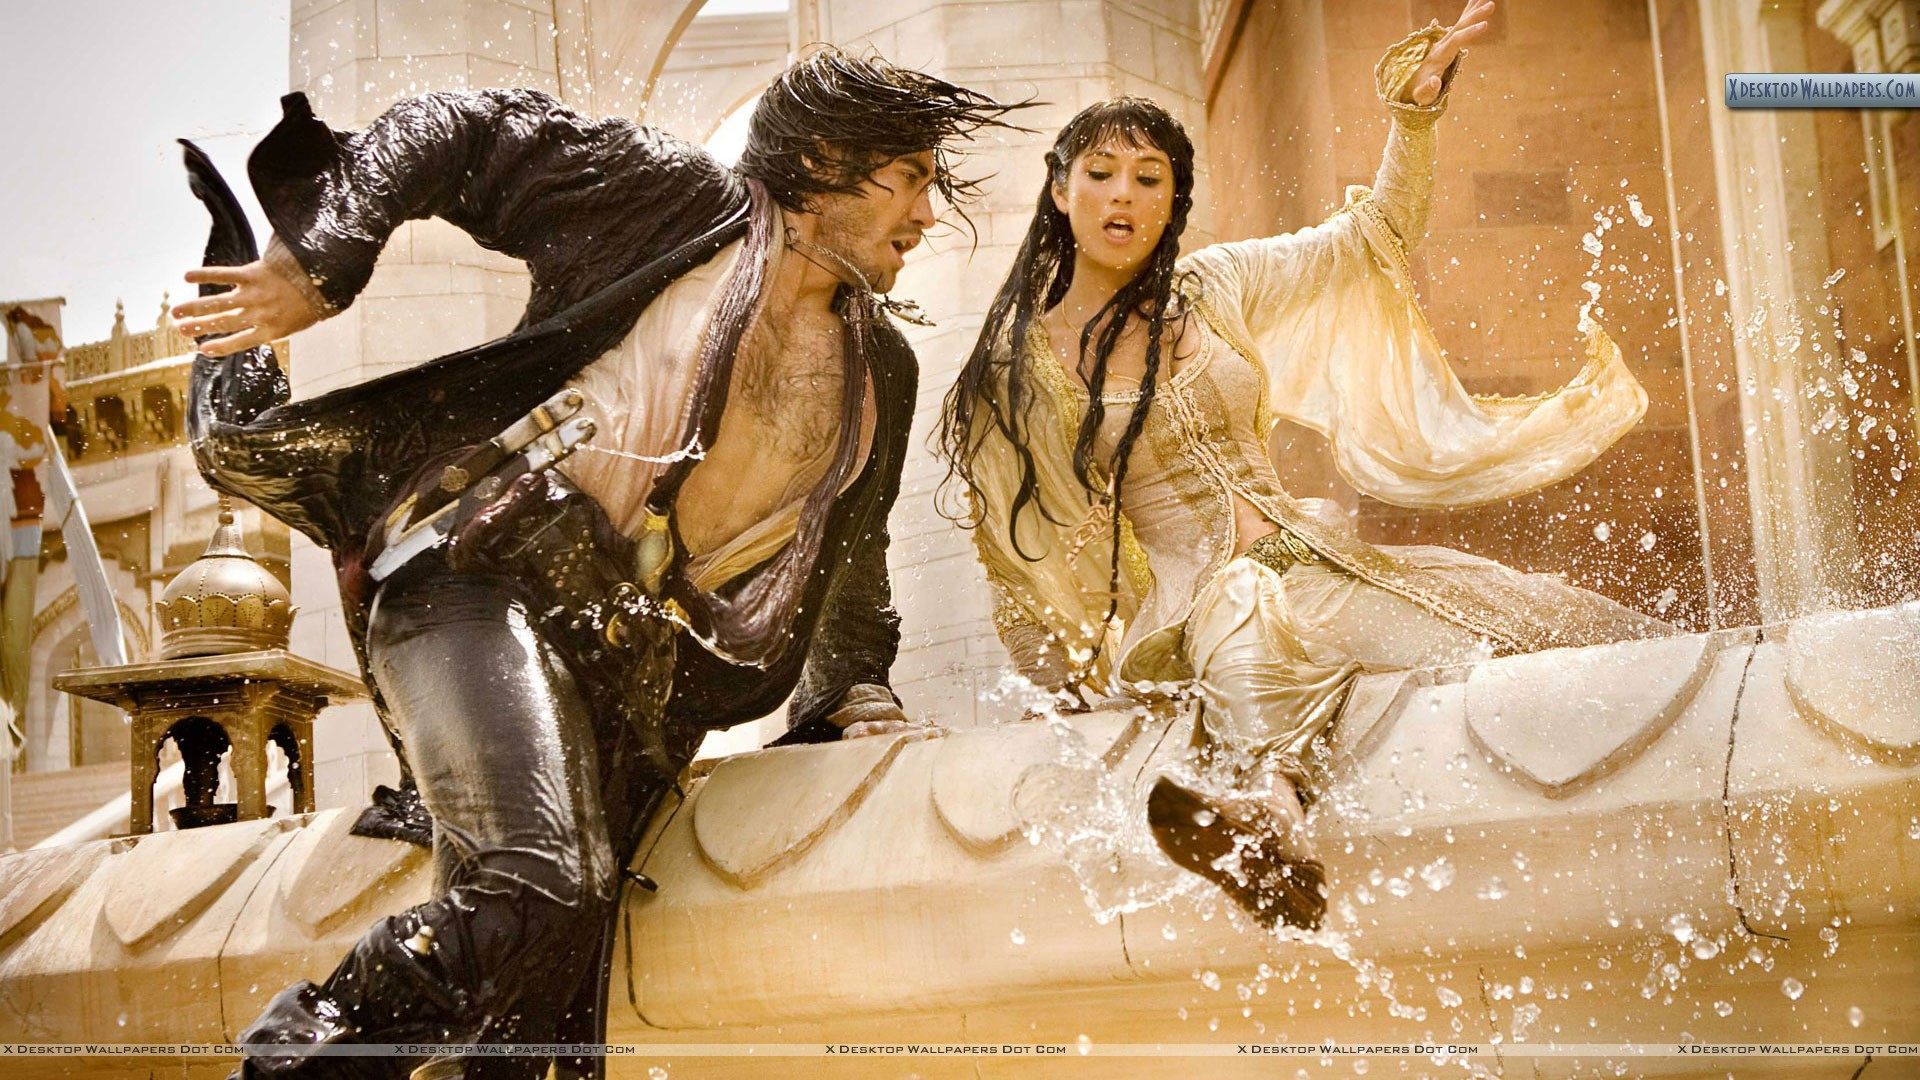 Prince Of Persia The Sands Of Time Wallpapers Photos Images In Hd